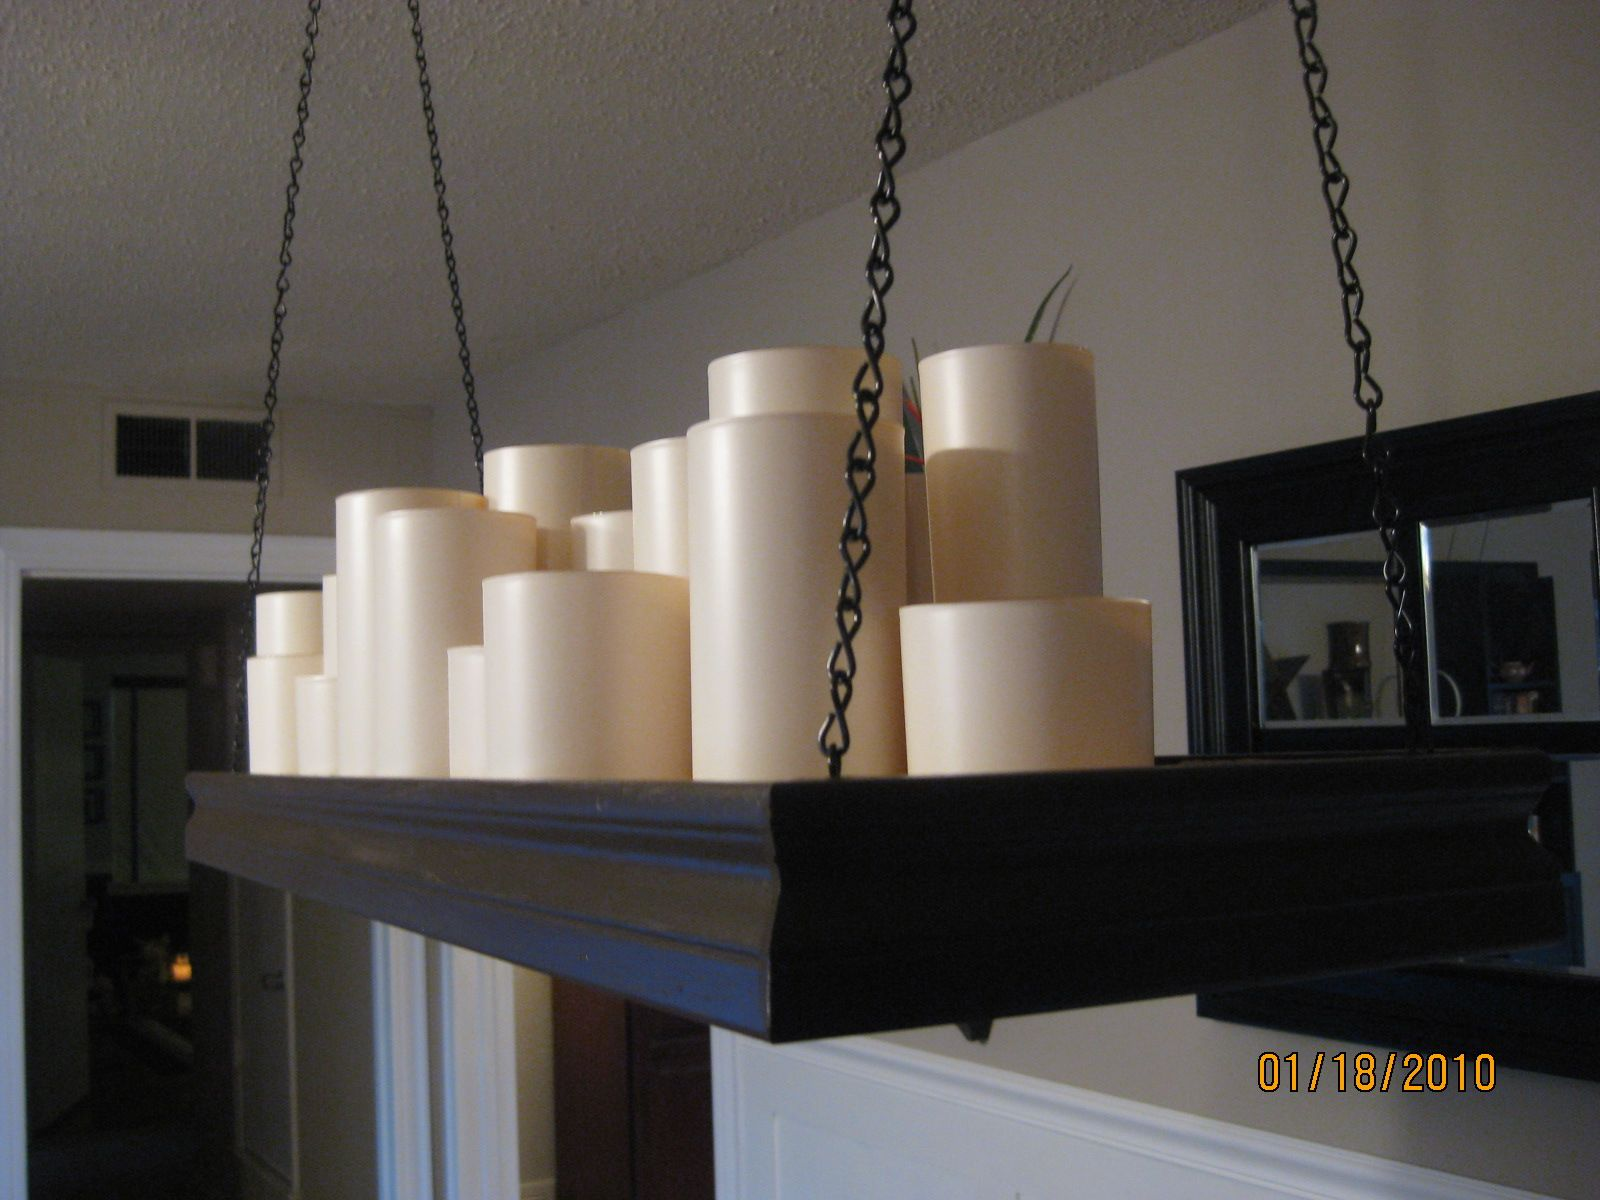 Frugal home ideas pb knock off candle chandelier could use real frugal home ideas pb knock off candle chandelier could use real candles or candles with arubaitofo Choice Image